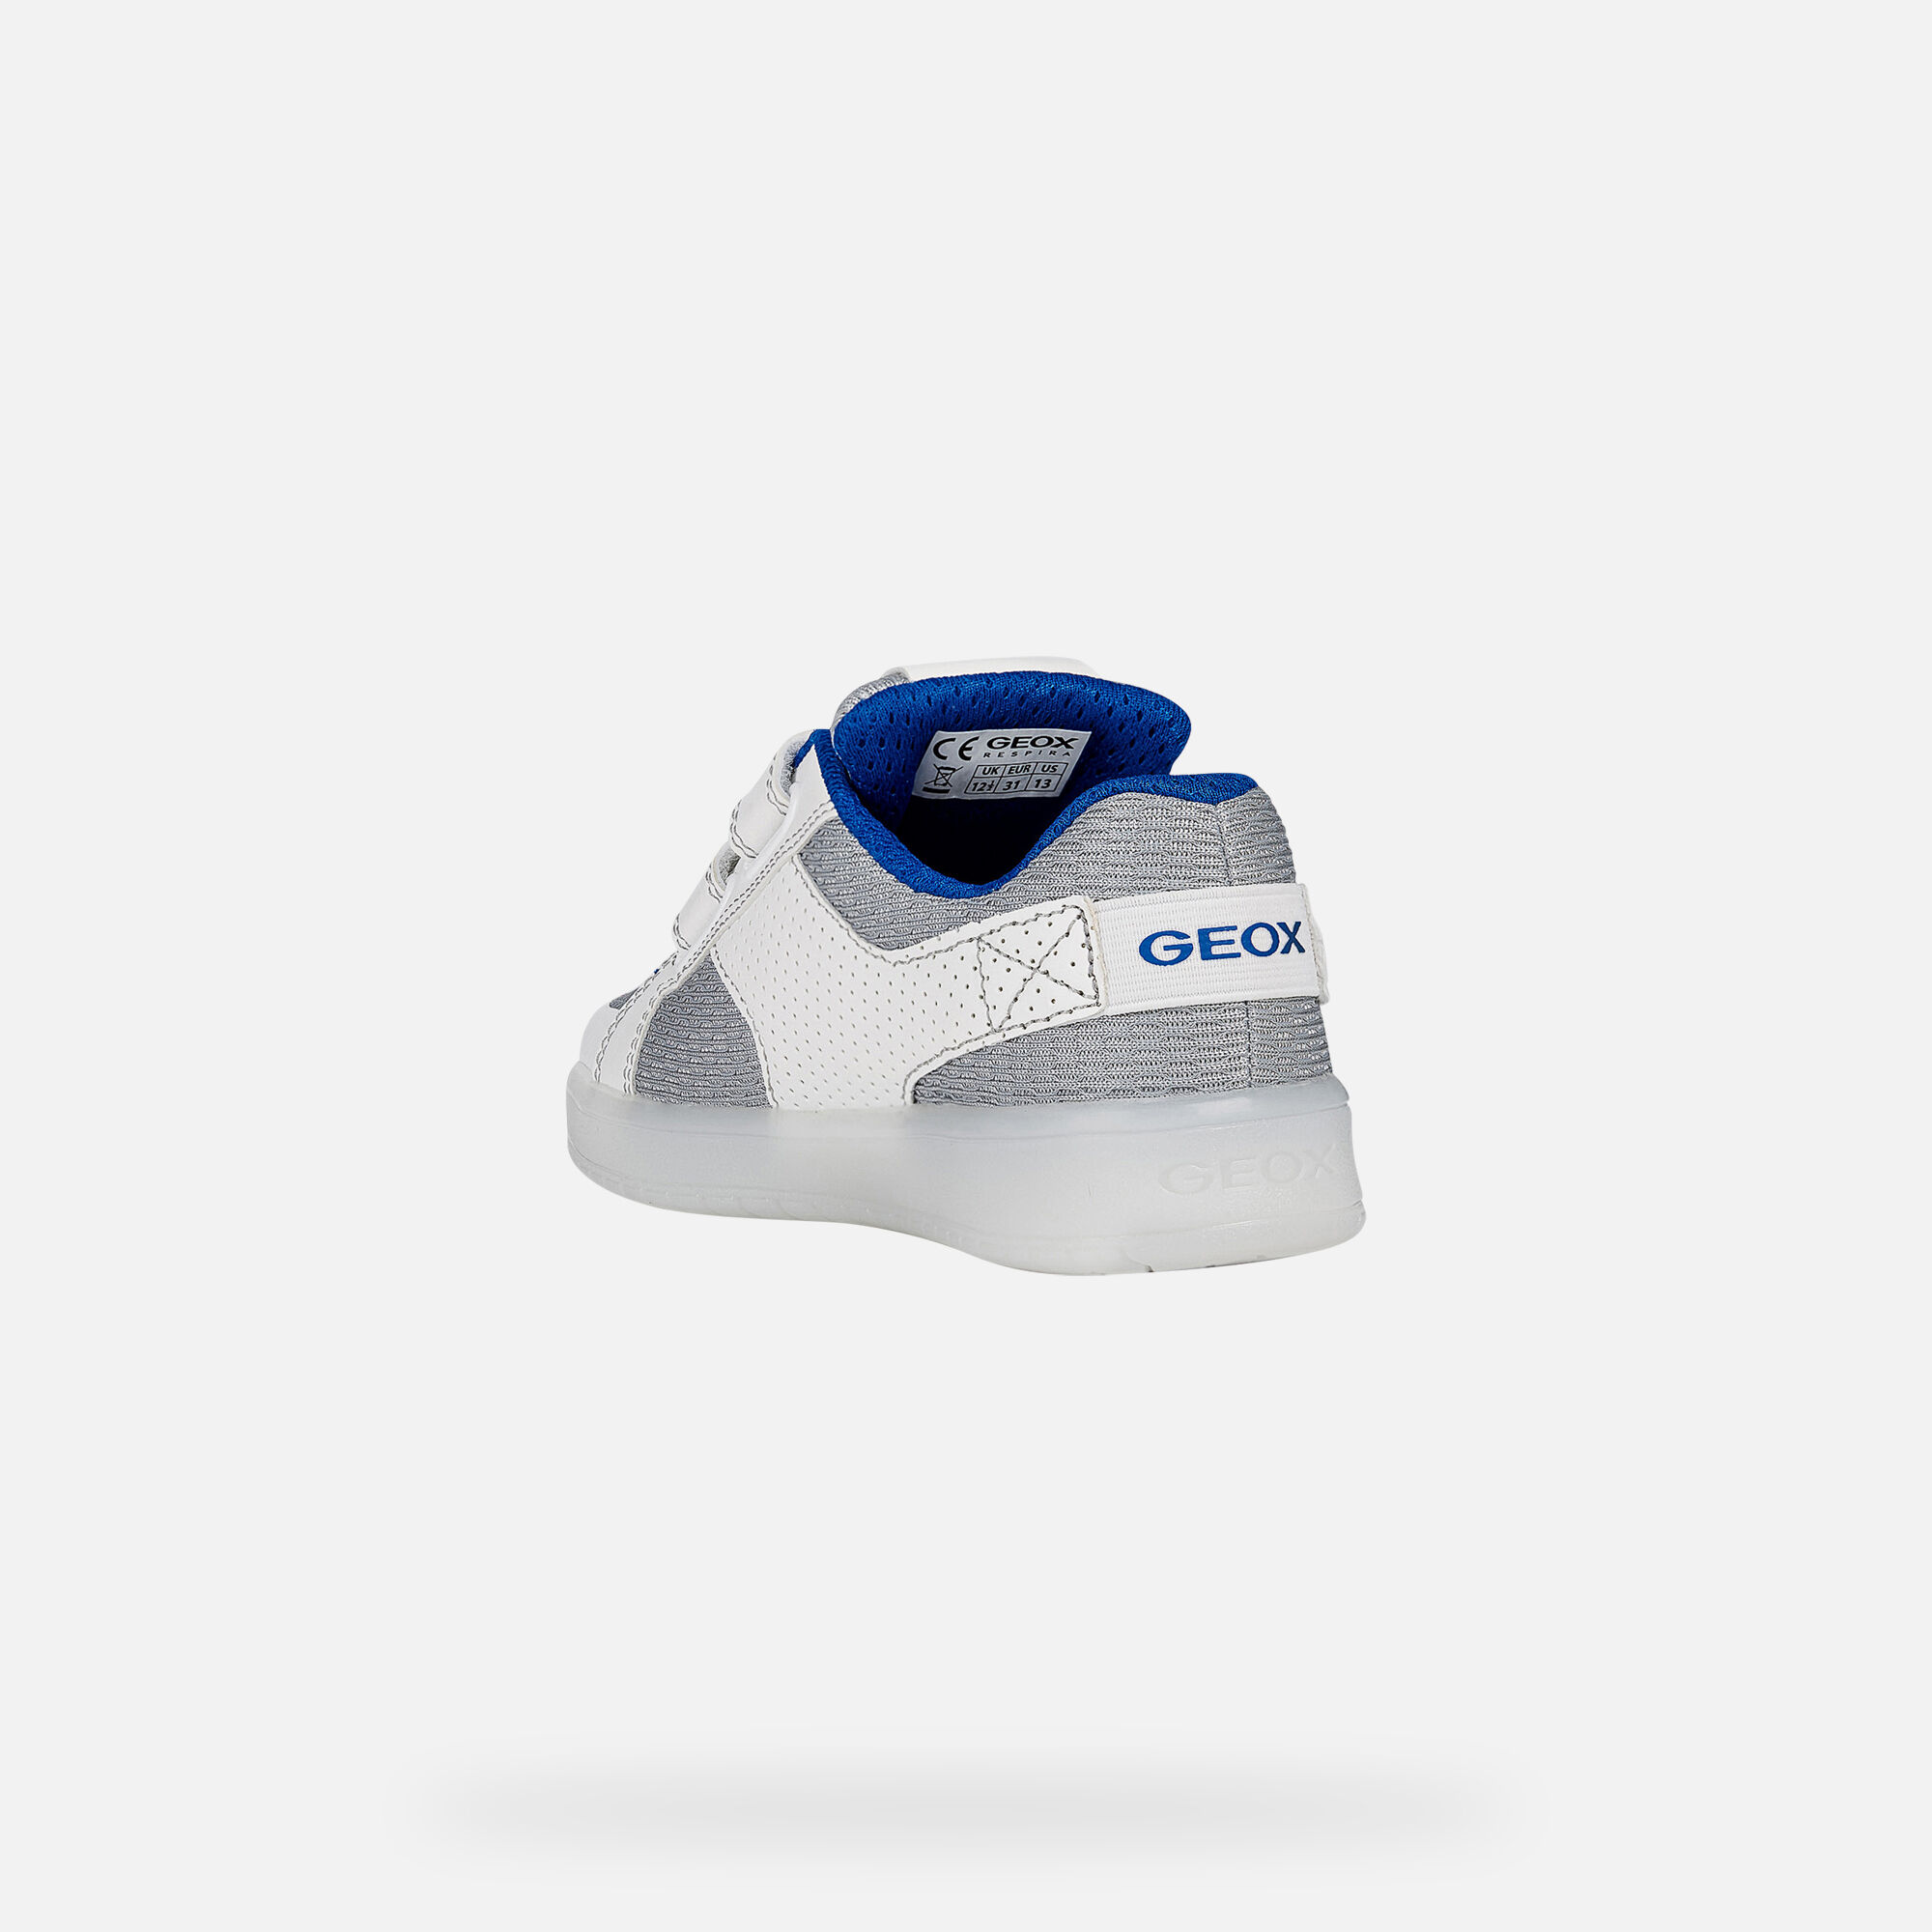 Geox J KOMMODOR BOY: White Junior Sneakers | Geox